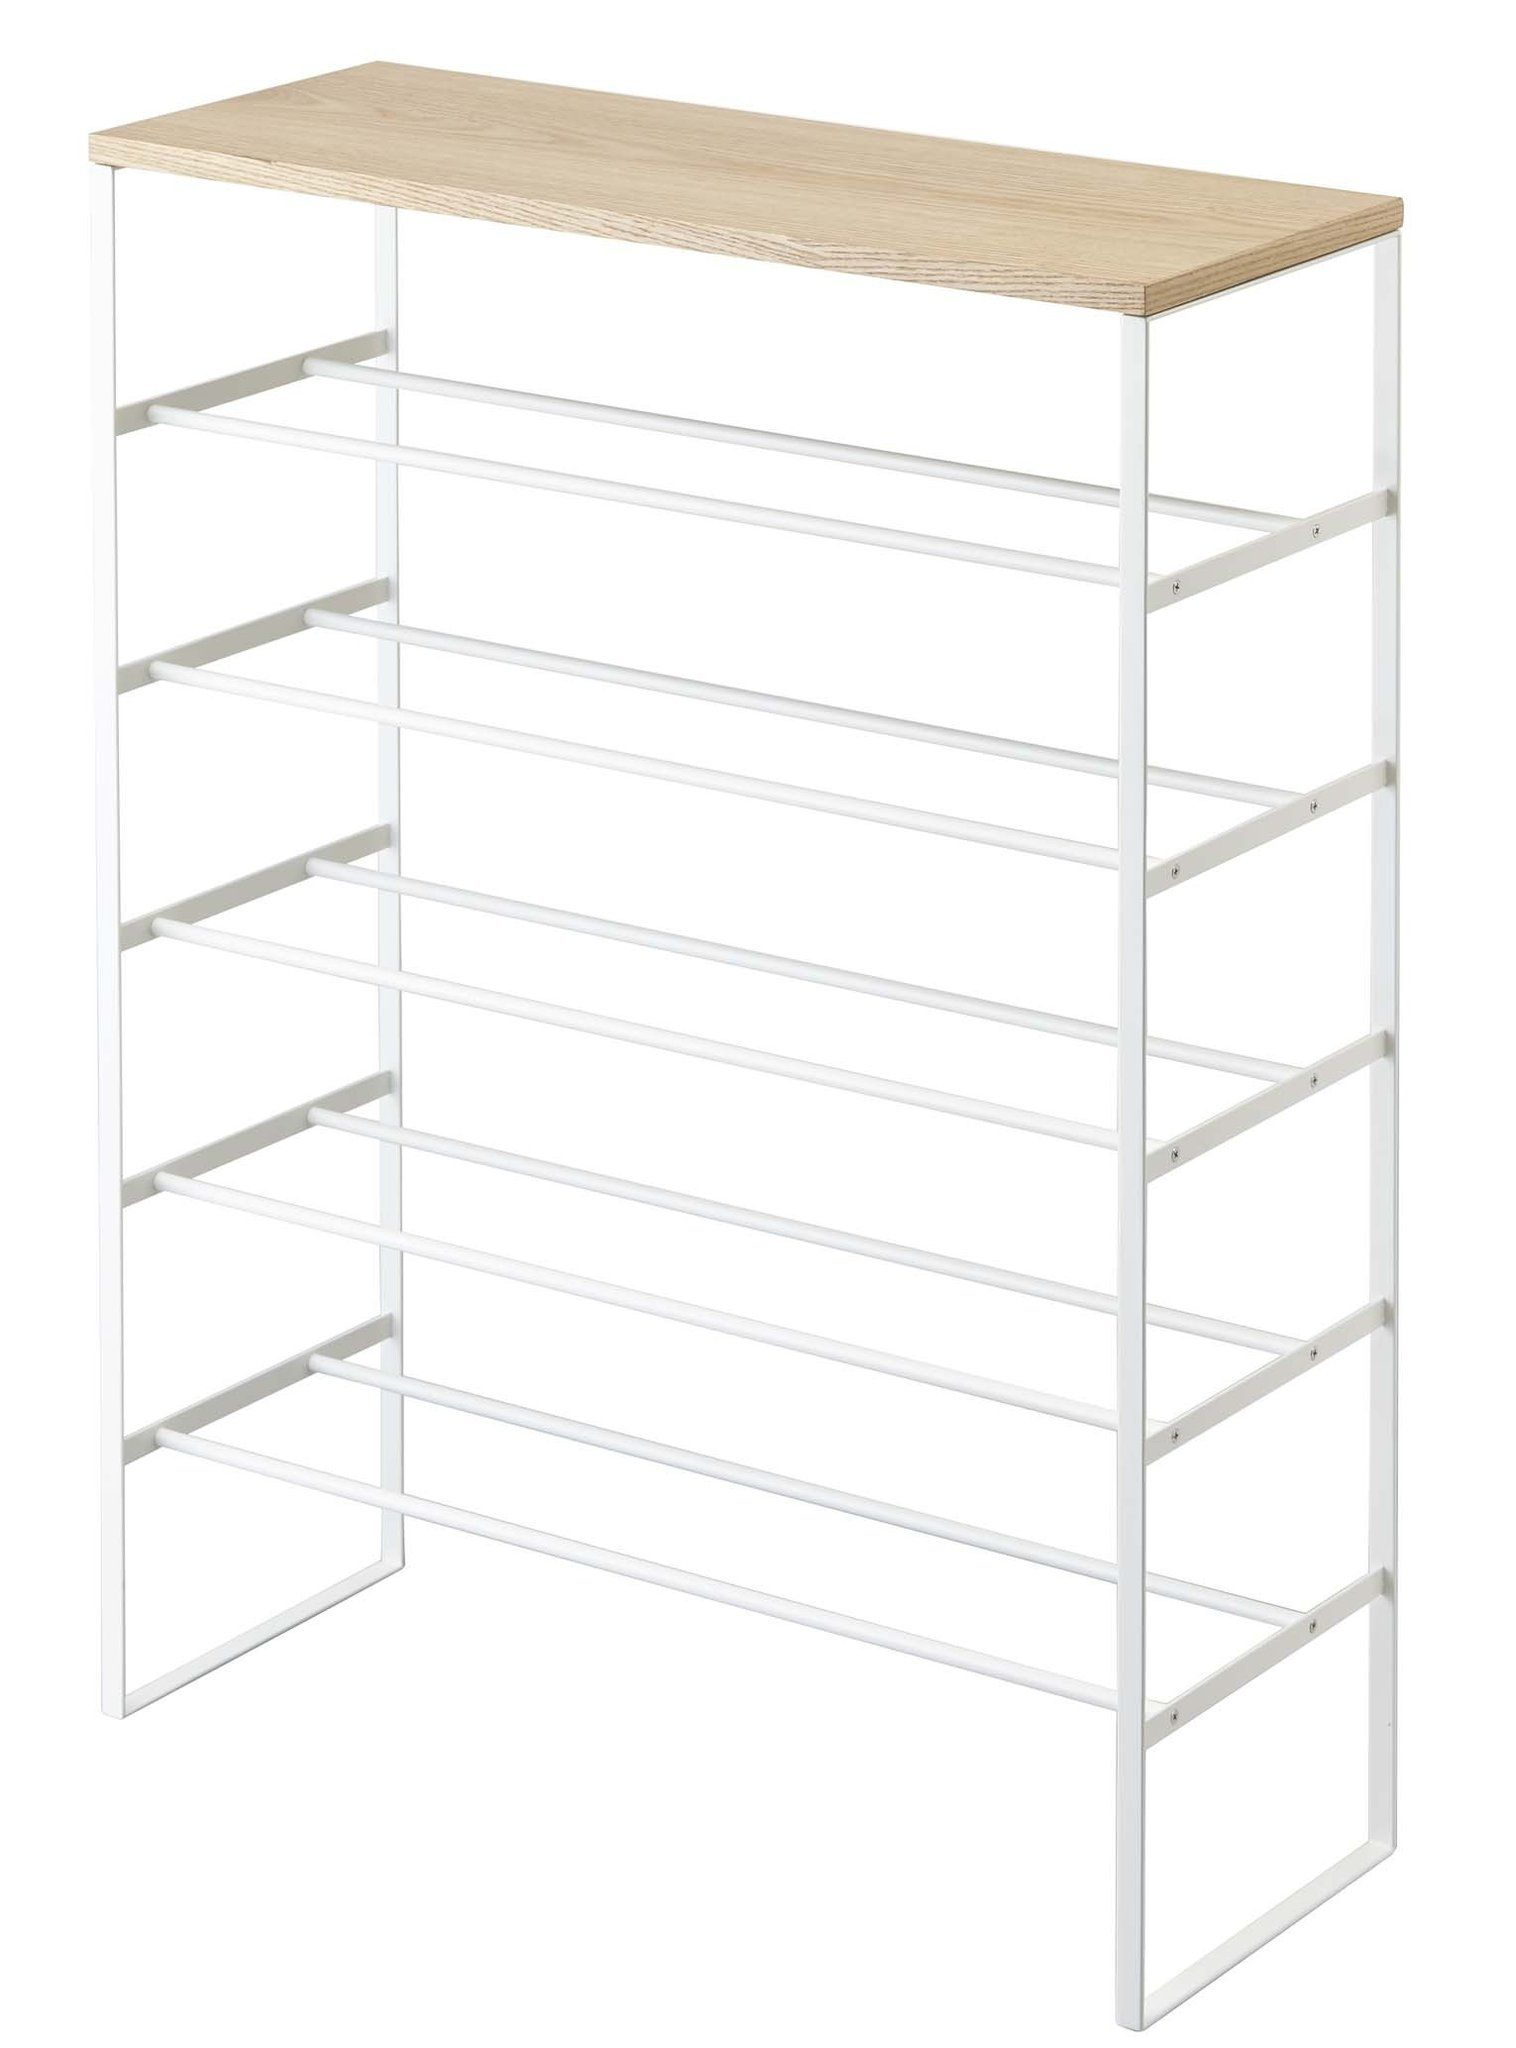 Tower 6 Tier Wood Top Shoe Rack In Various Colors Design By Yamazaki